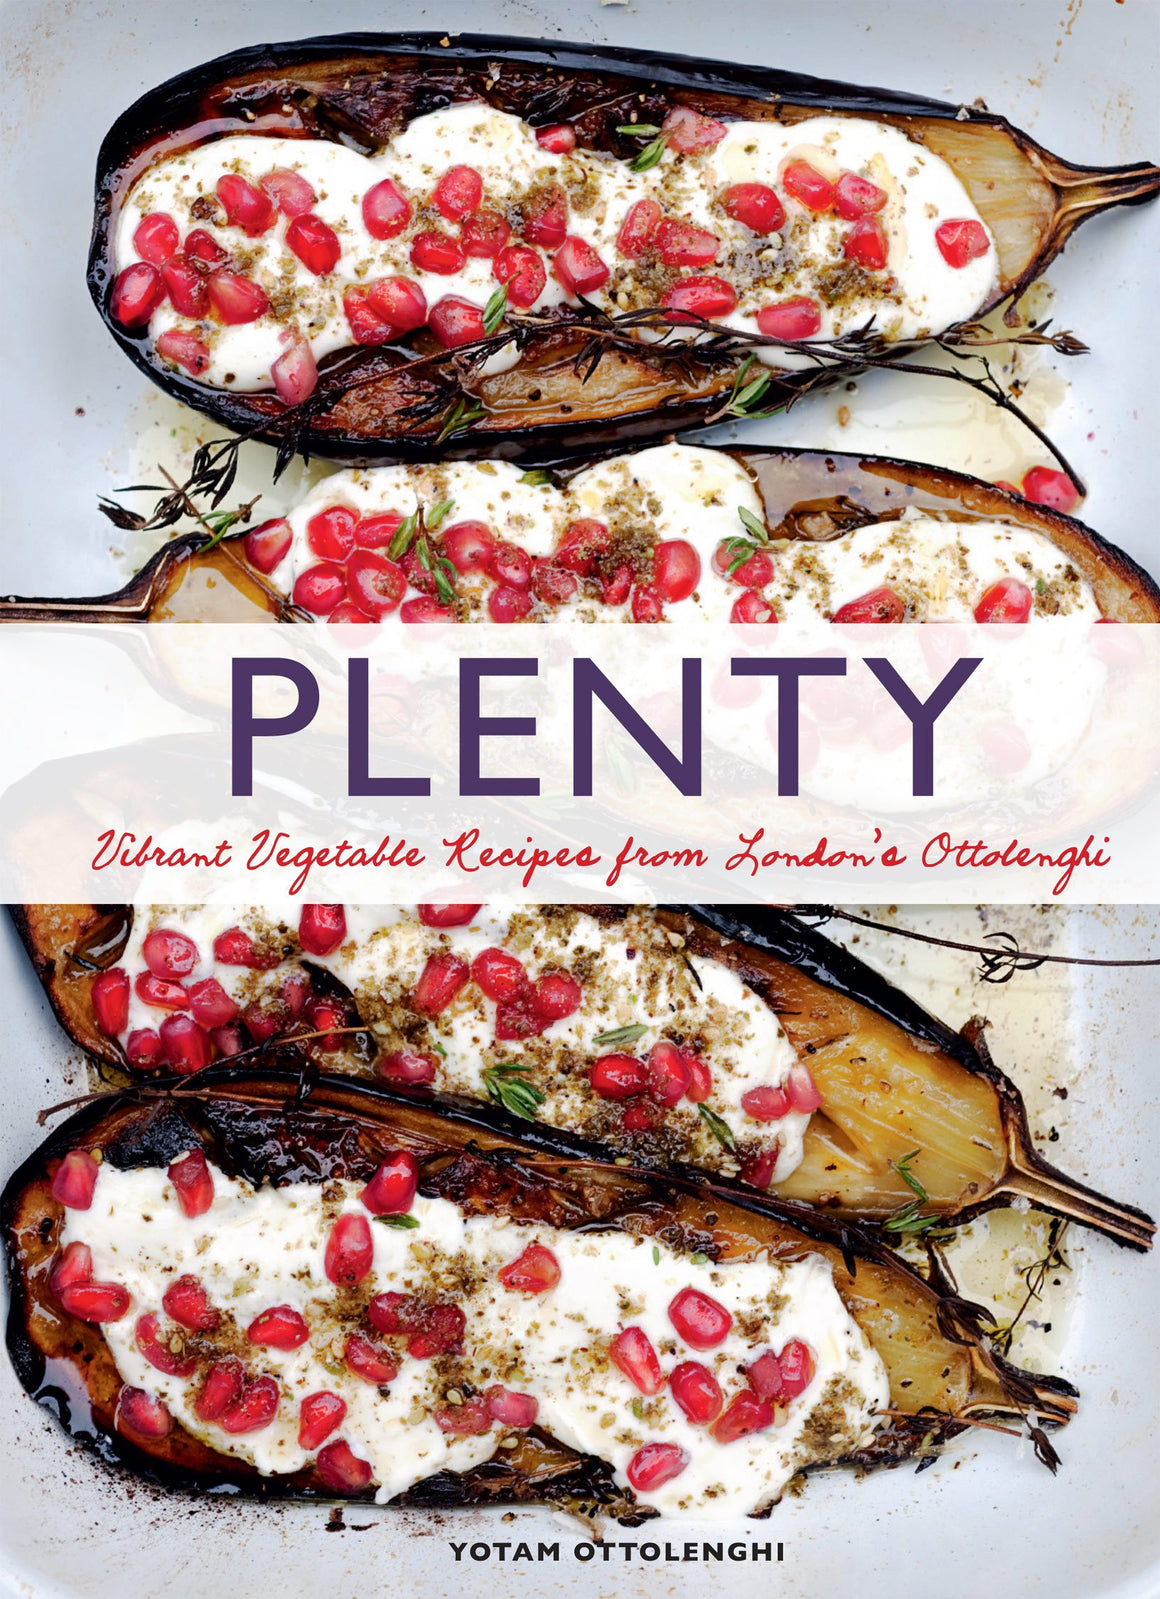 Yotam Ottolenghi. Plenty: Vibrant Vegetable Recipes from London's Ottolenghi